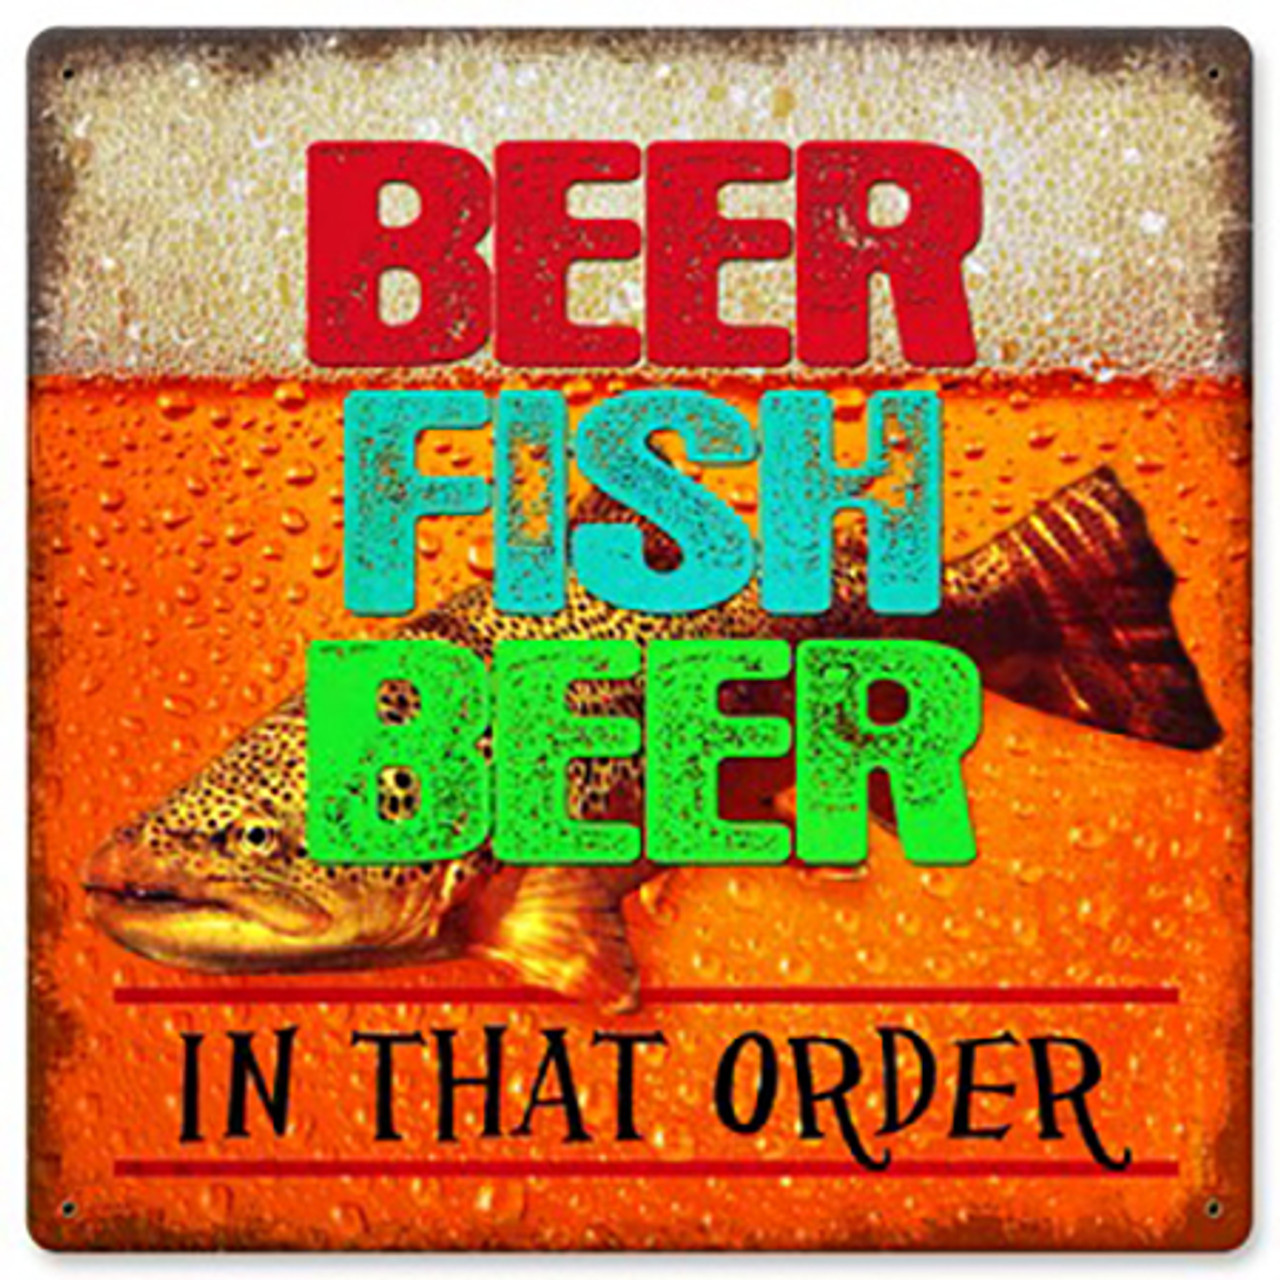 Beer Fish Beer In That Order Metal Sign 12 x 12 Inches